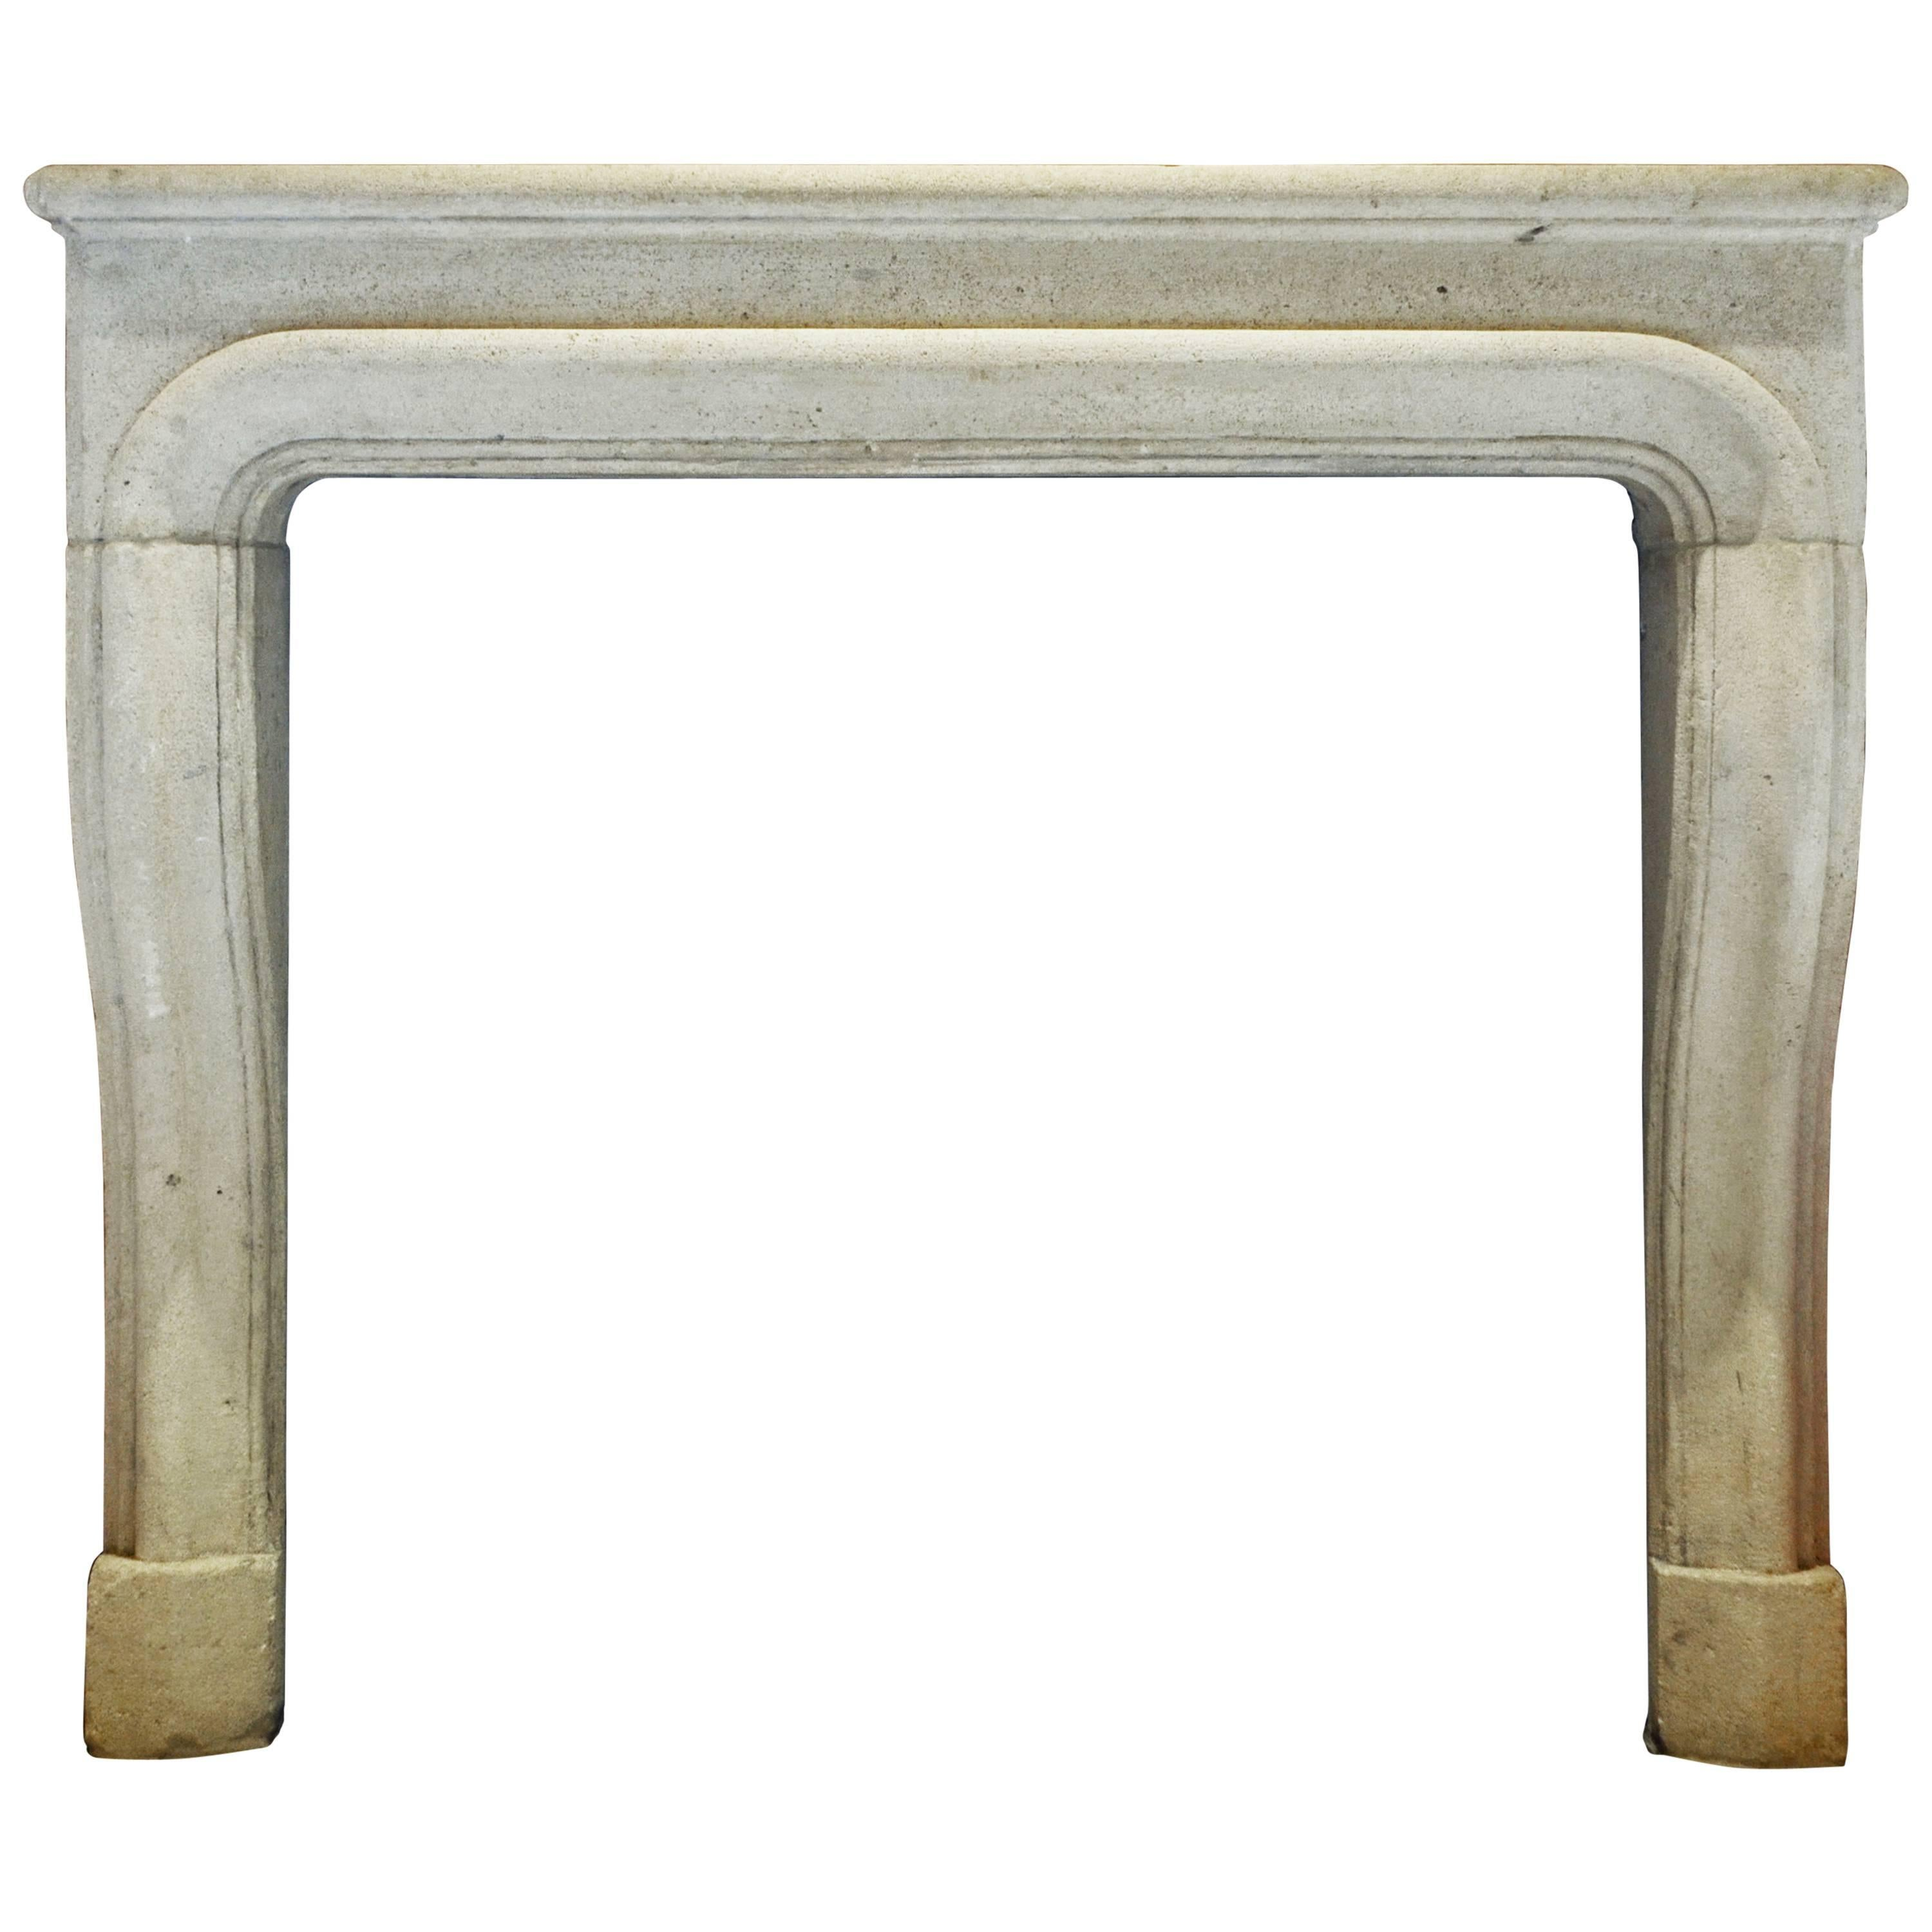 Antique 18th Century French Limestone Fireplace Mantel